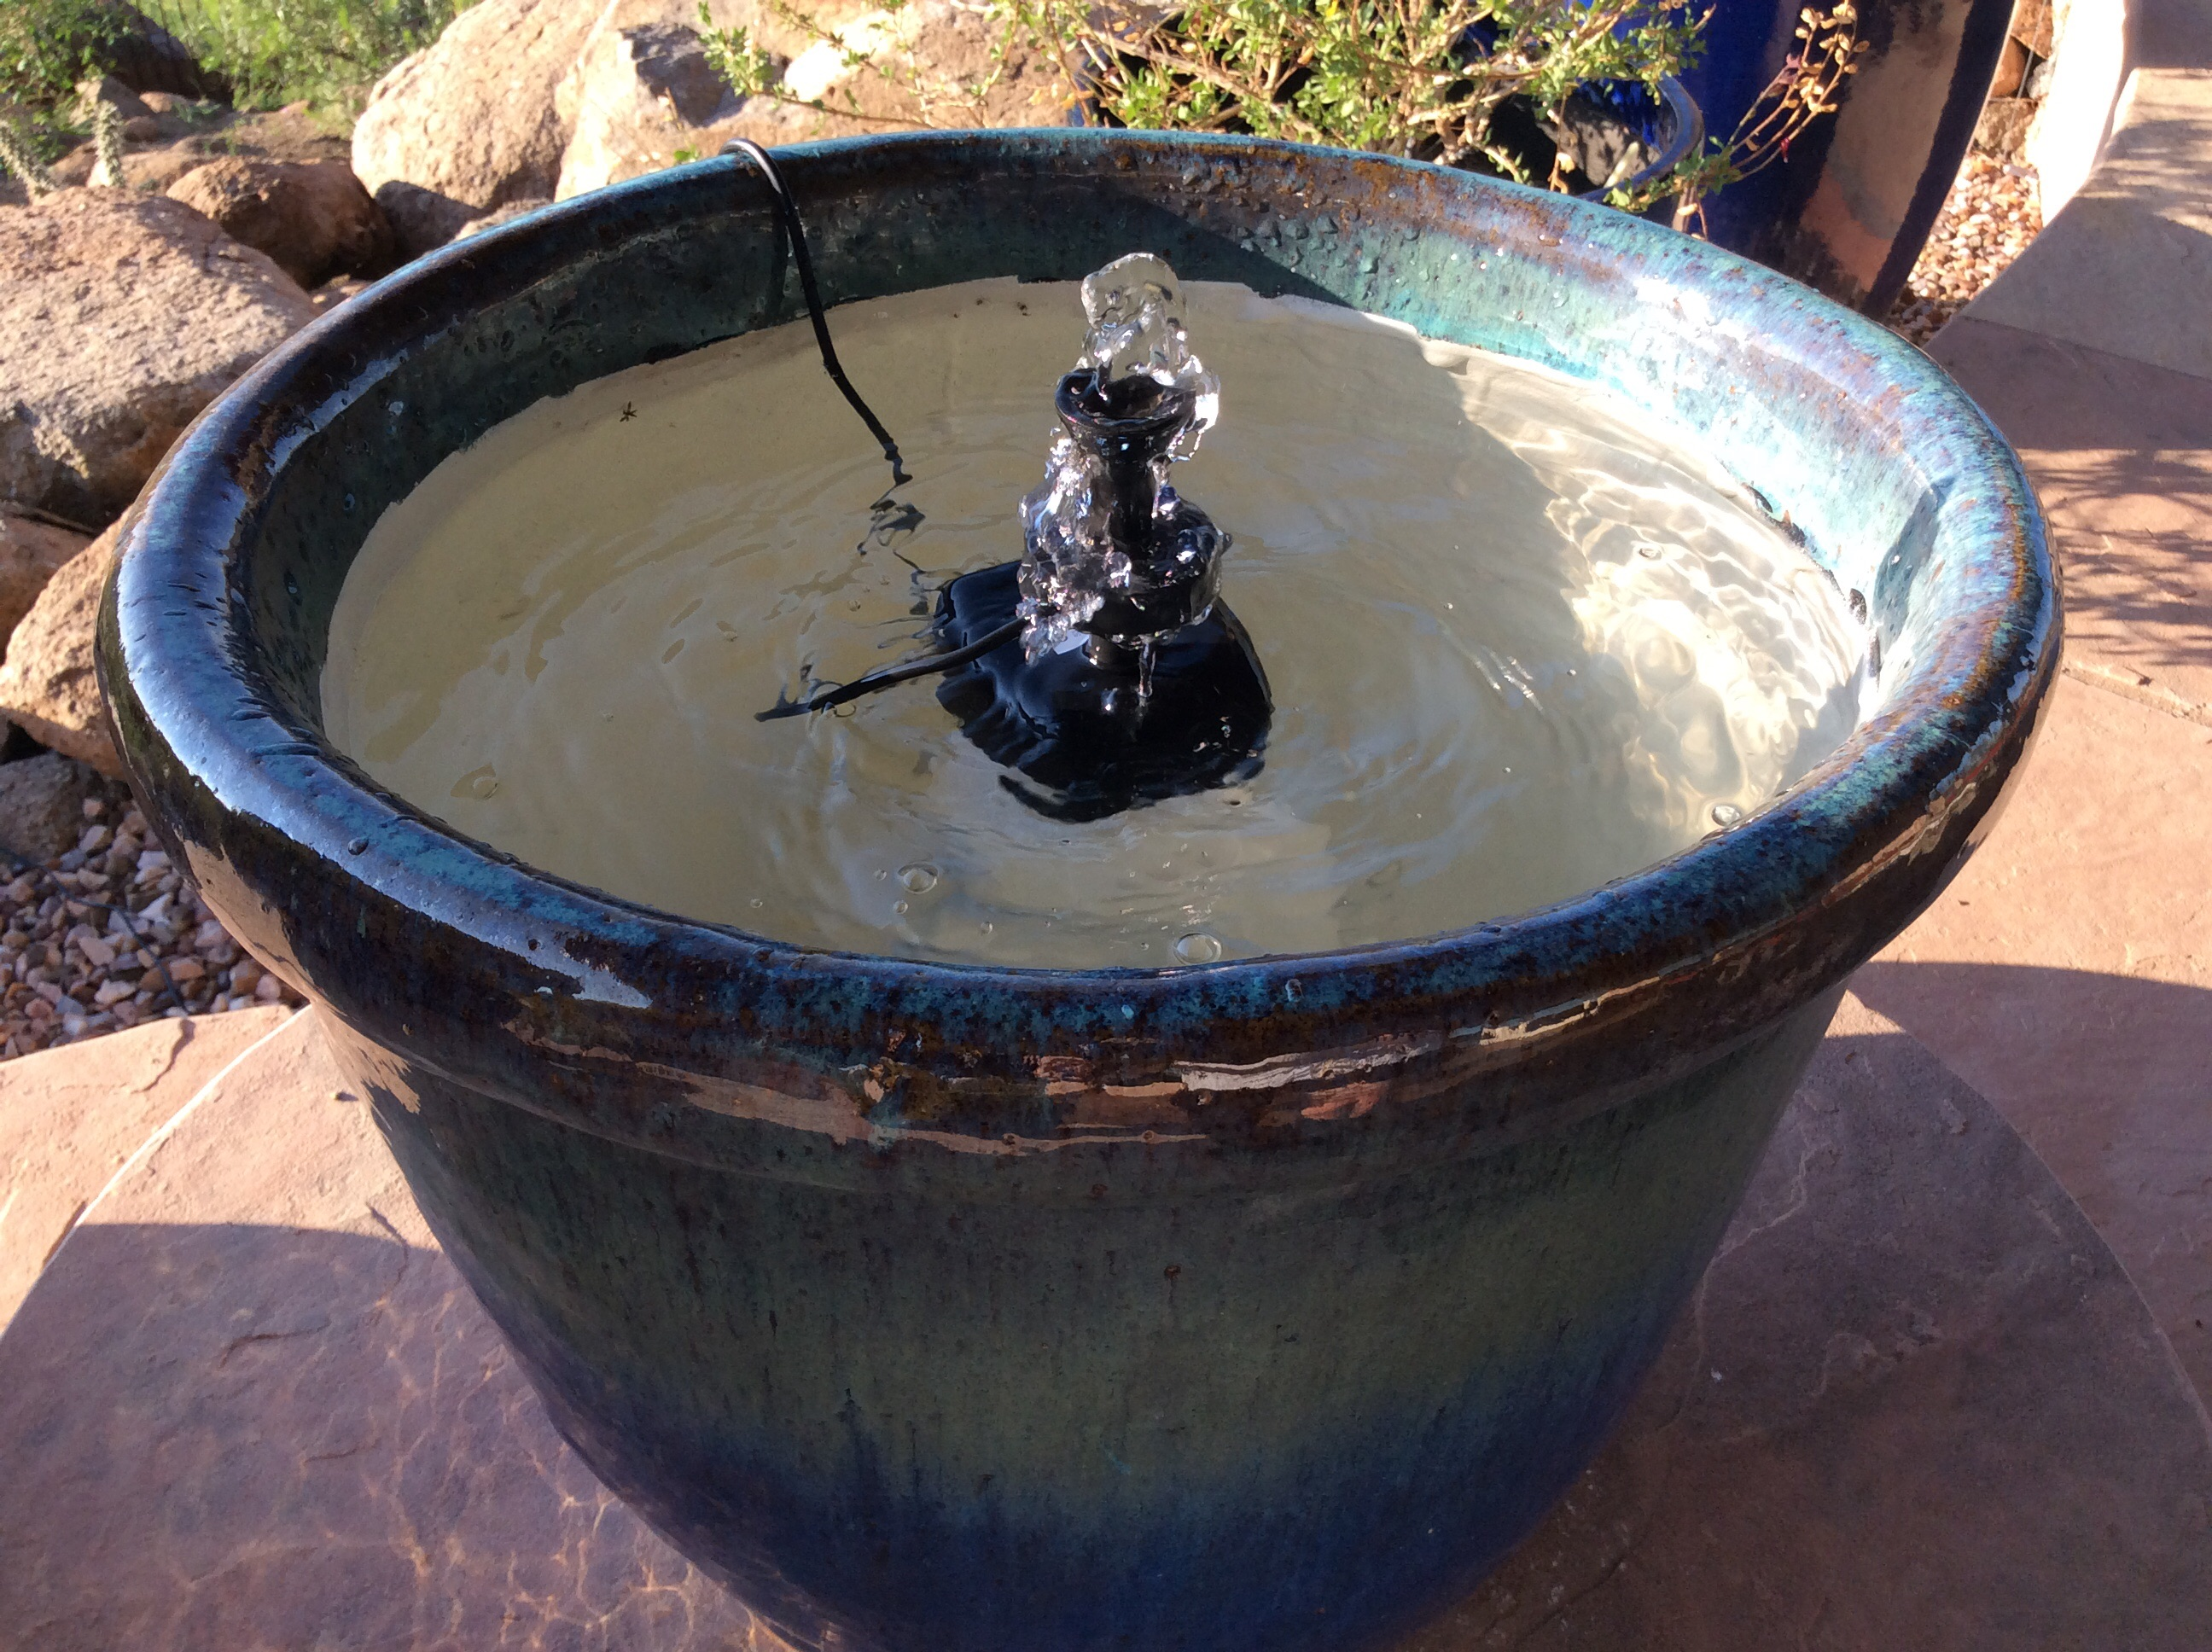 Picture of Repurpose Plant Pot Into Water Feature W/ Solar Fountain + Fish